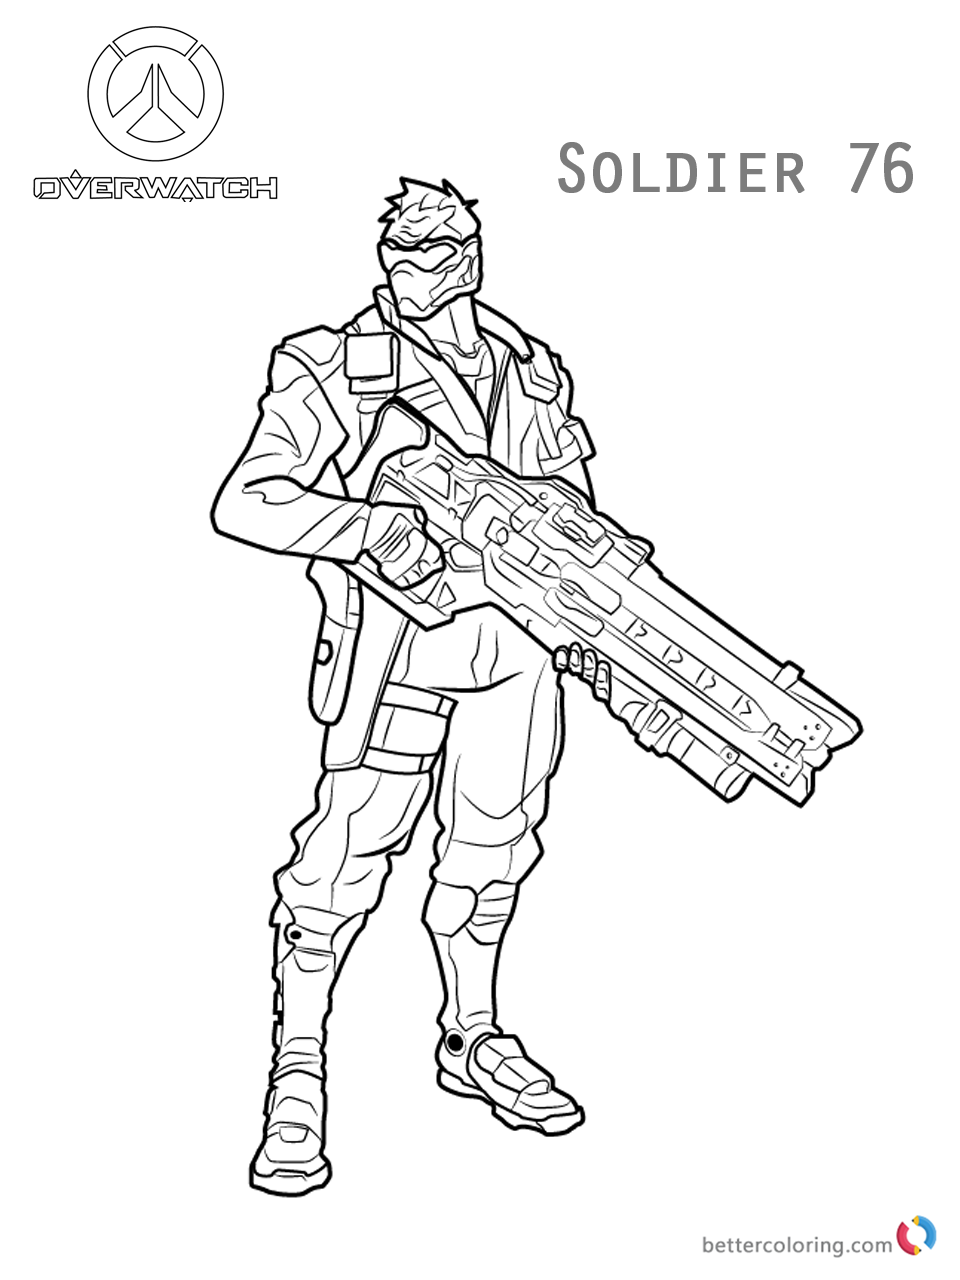 Soldier 76 from Overwatch Coloring Pages - Free Printable Coloring Pages